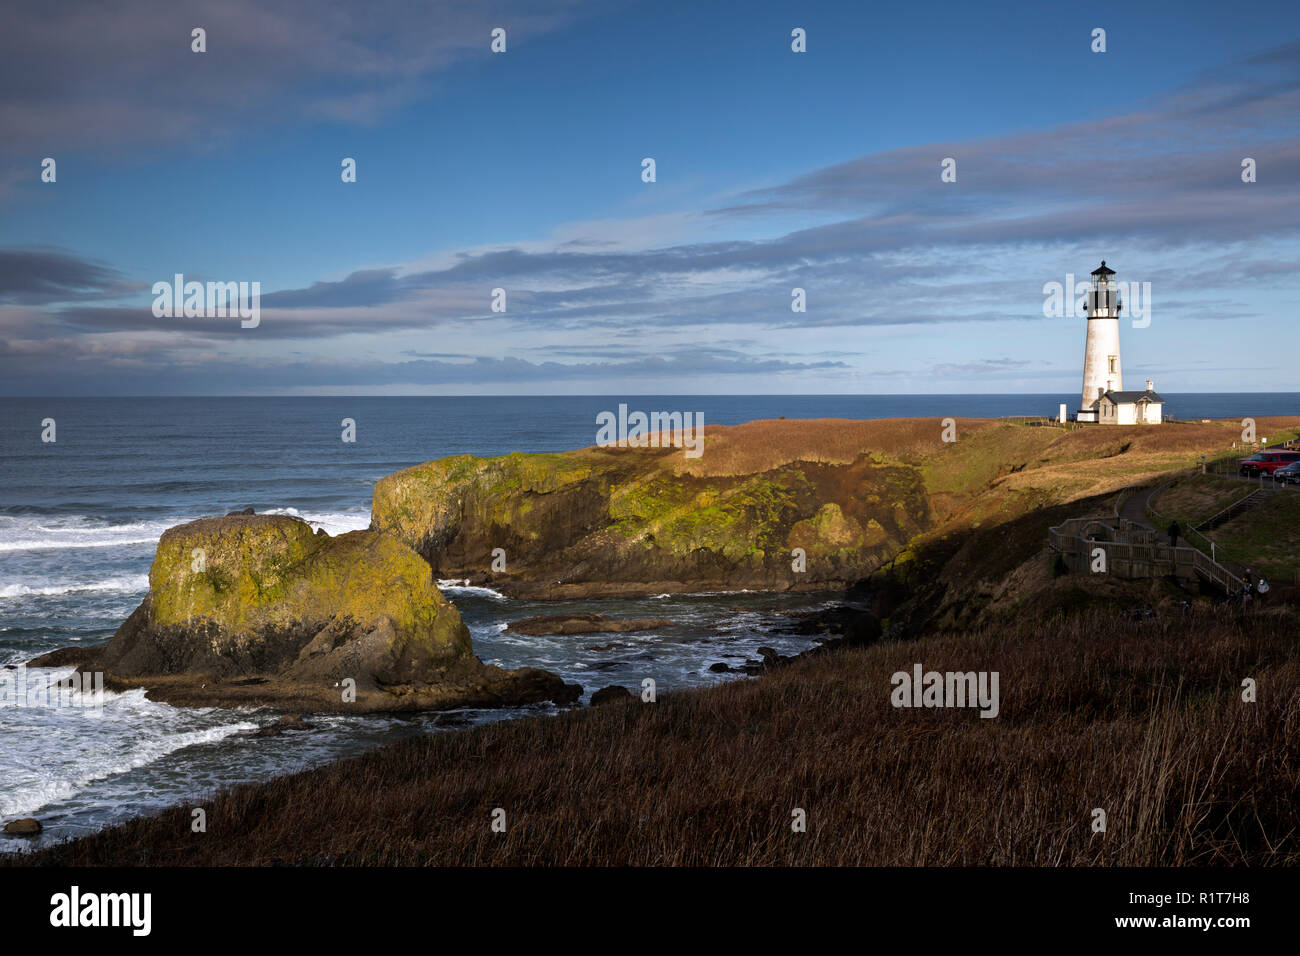 OR02386-00...OREGON - Yaquina Head Lighthouse in the Yaquina Head Outstanding Natural Area. Stock Photo